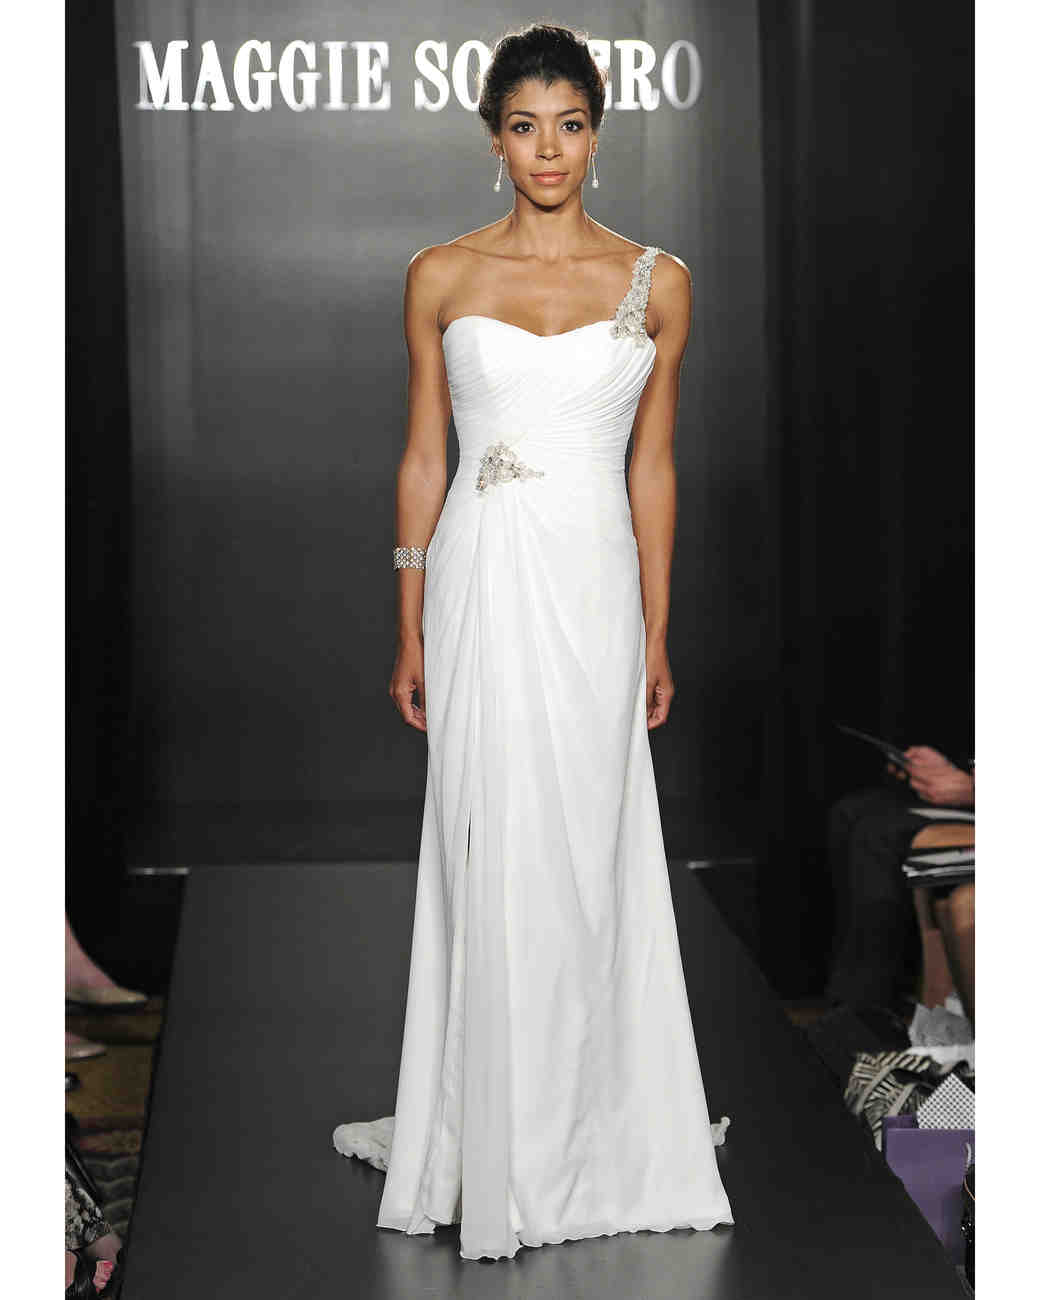 maggie-sottero-spring2013-wd108745-017.jpg